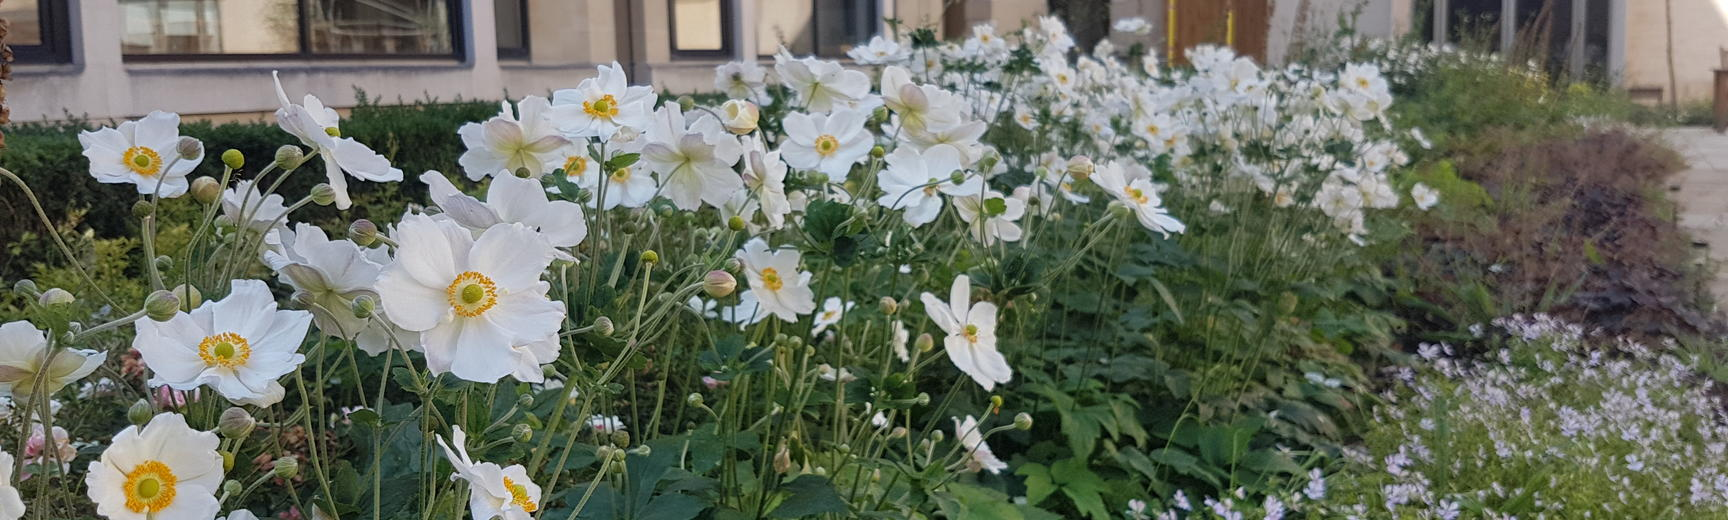 Flowers in the West Quad